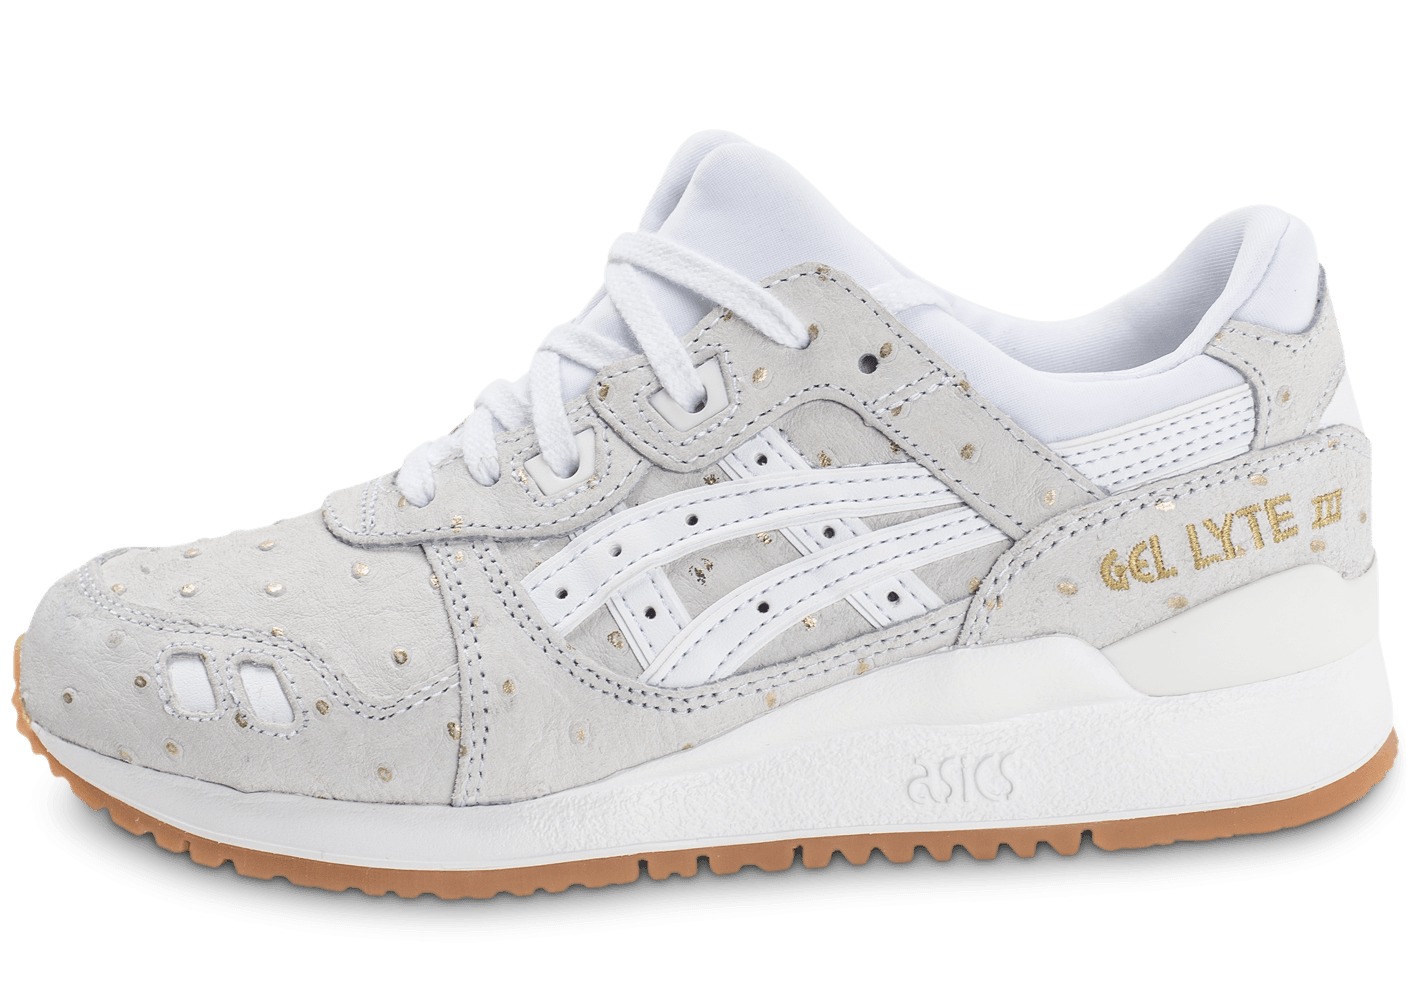 purchase cheap aee51 3aef2 ... get asics gel lyte iii valentine pack grise chaussures black friday  chaussures et baskets chausport c6846